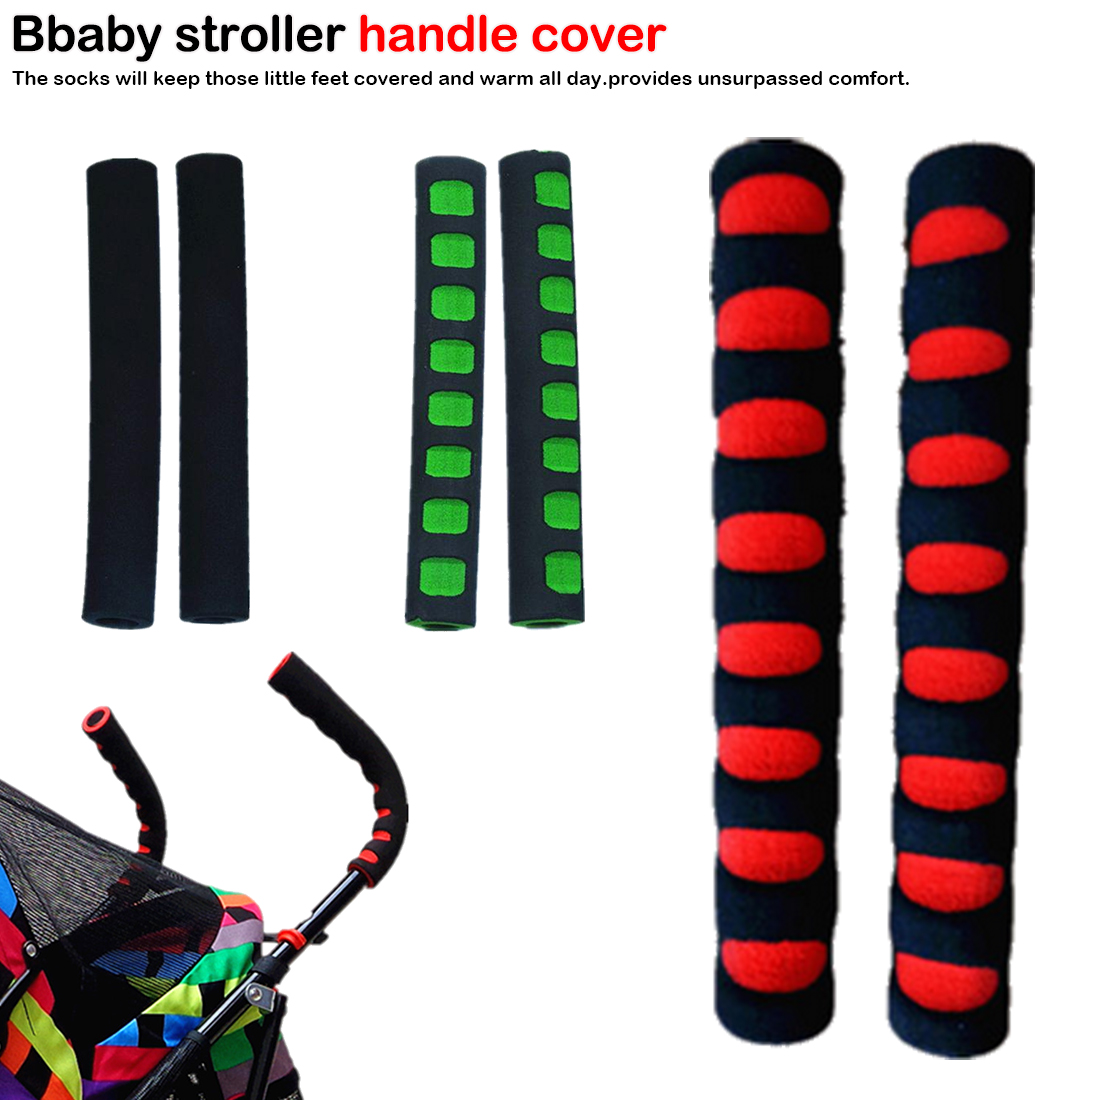 2pcs/set Baby Stroller Handle Cover Push Tube Cart Sleeve EVA Foam Covers Armrest Soft Protector Grips Accessories High Quality(China)